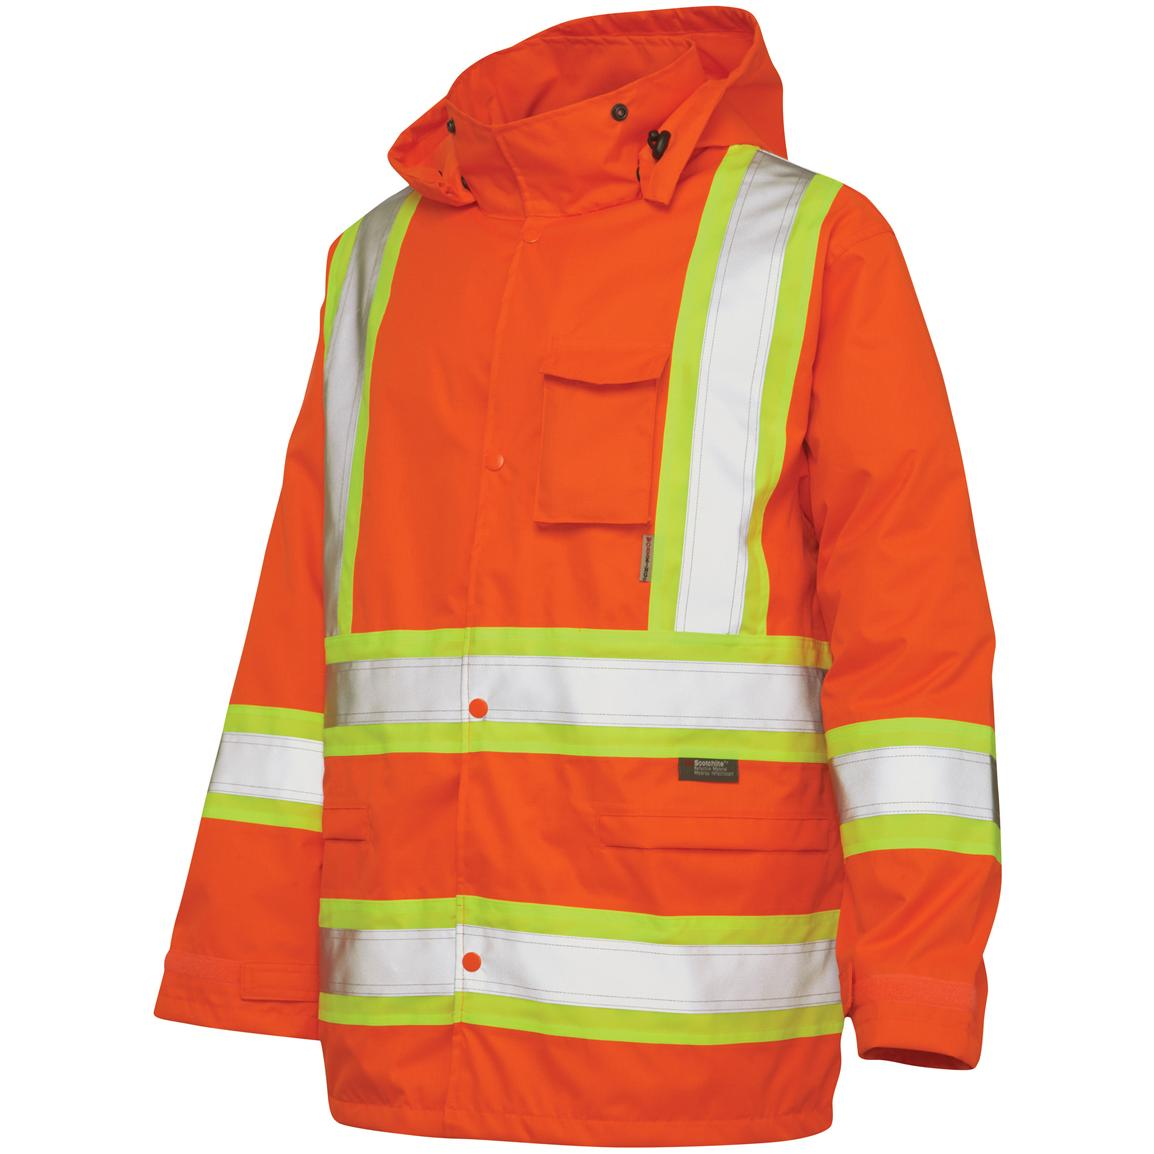 Work King Safety Hi-Vis Hooded Rain Jacket, Fluorescent Orange